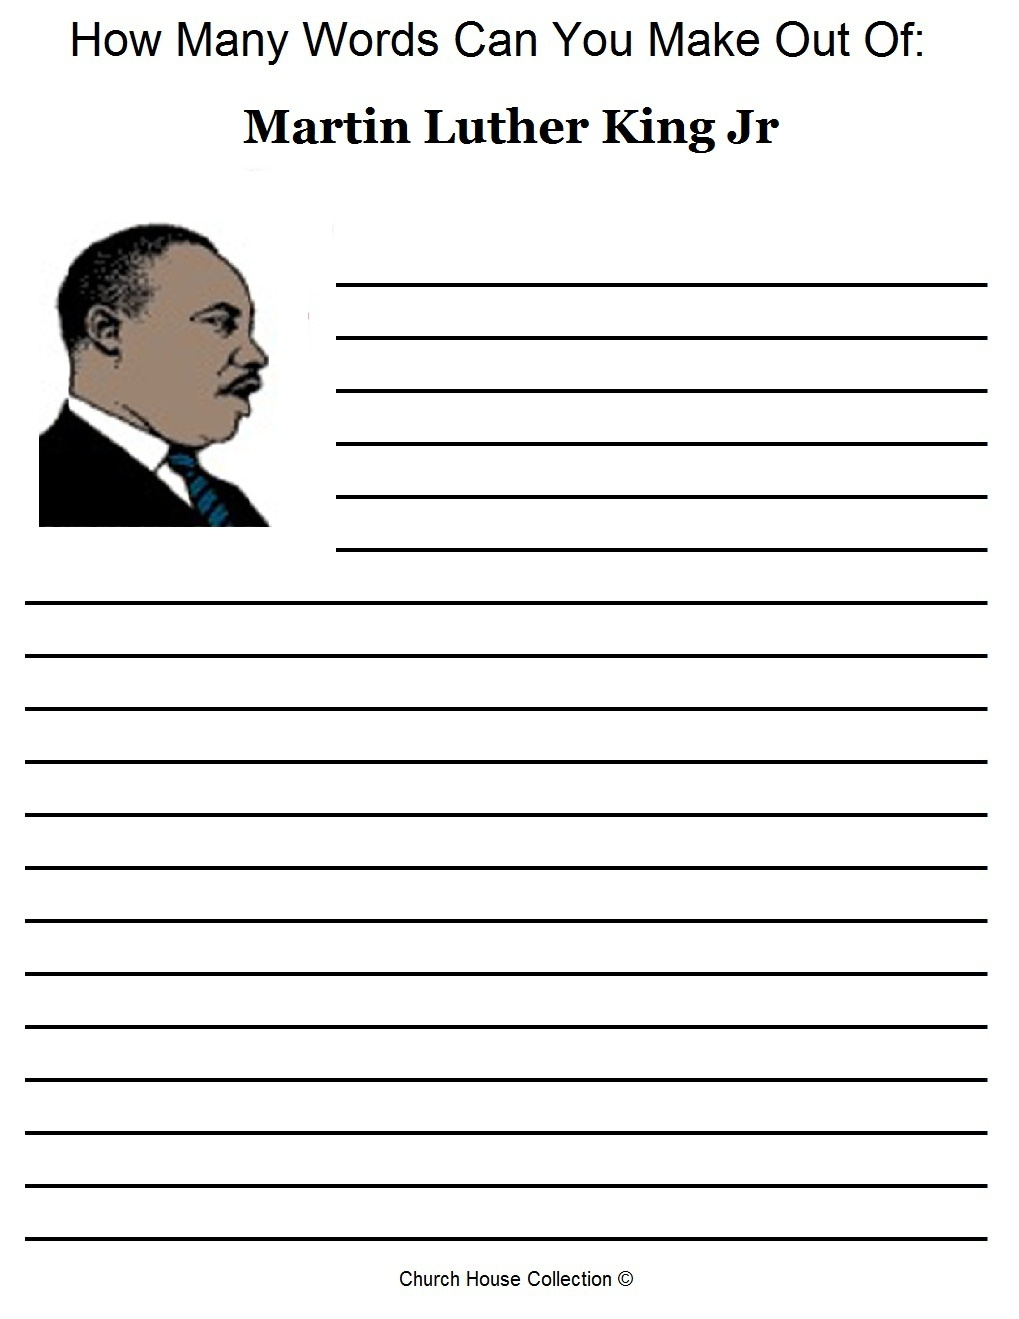 Church House Collection Blog: Free Martin Luther King Jr Worksheets - Free Printable Martin Luther King Jr Worksheets